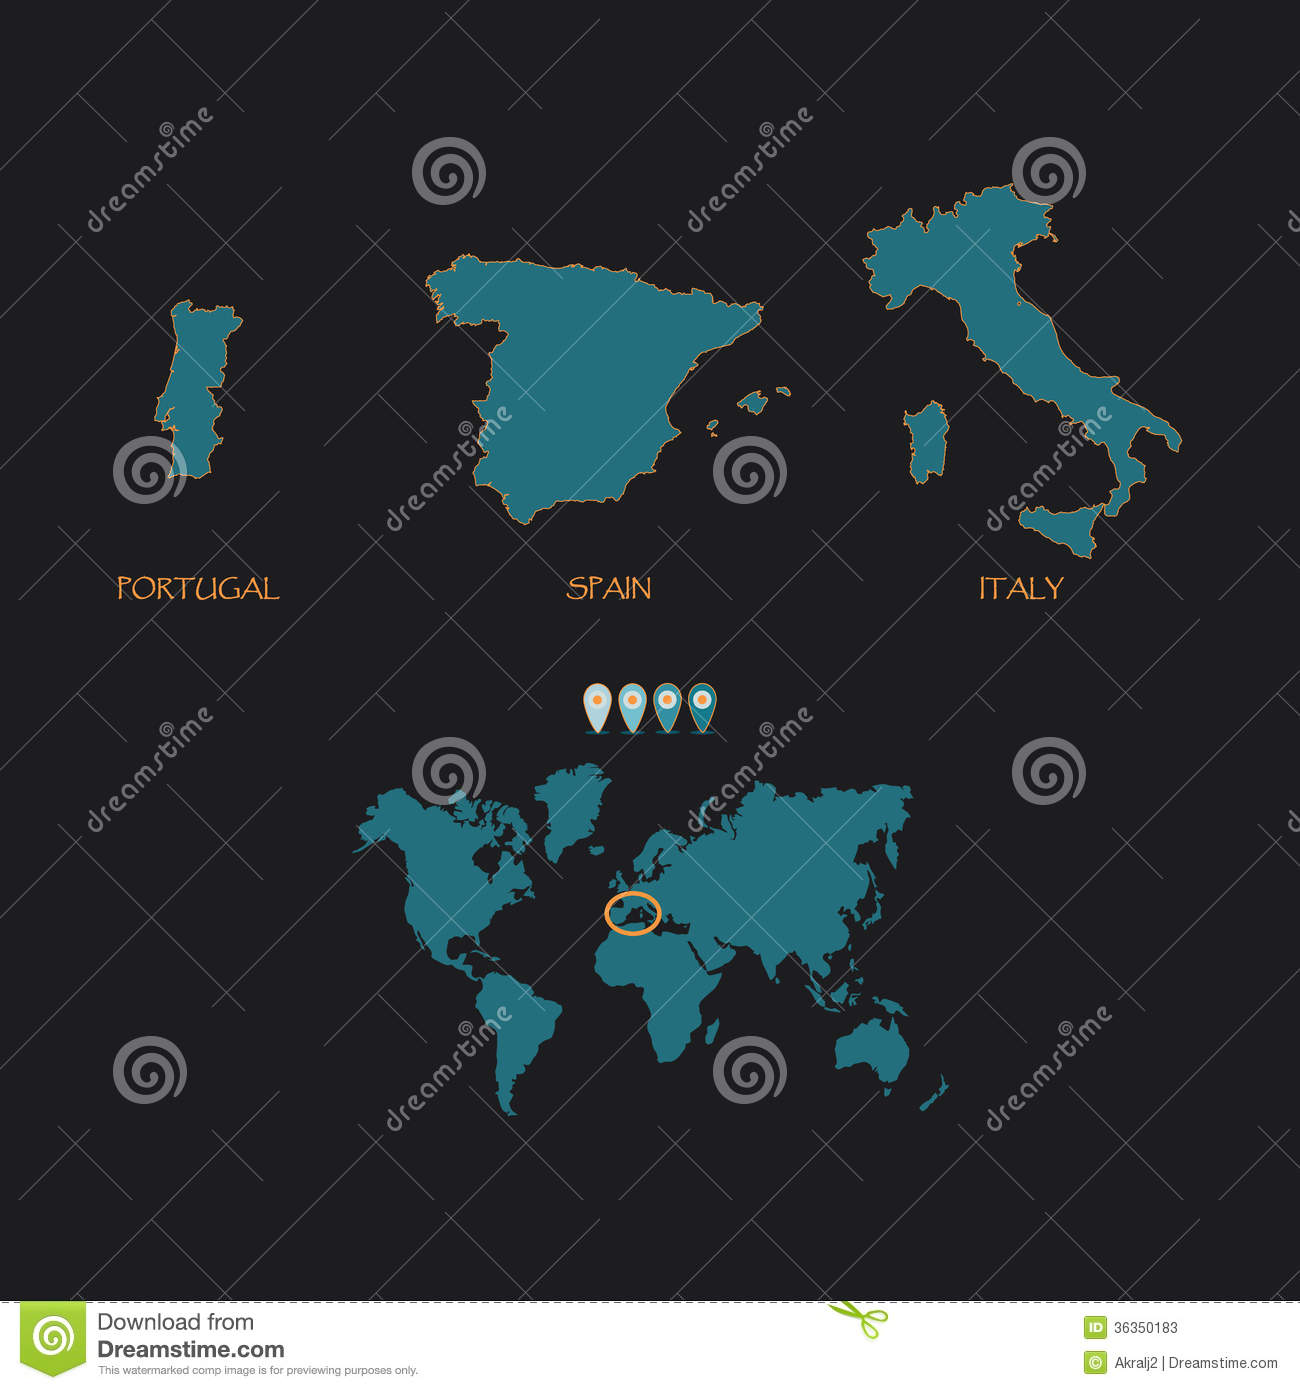 Map Of Spain Portugal And Italy.Map Of Spain Portugal Italy Stock Illustration Illustration Of